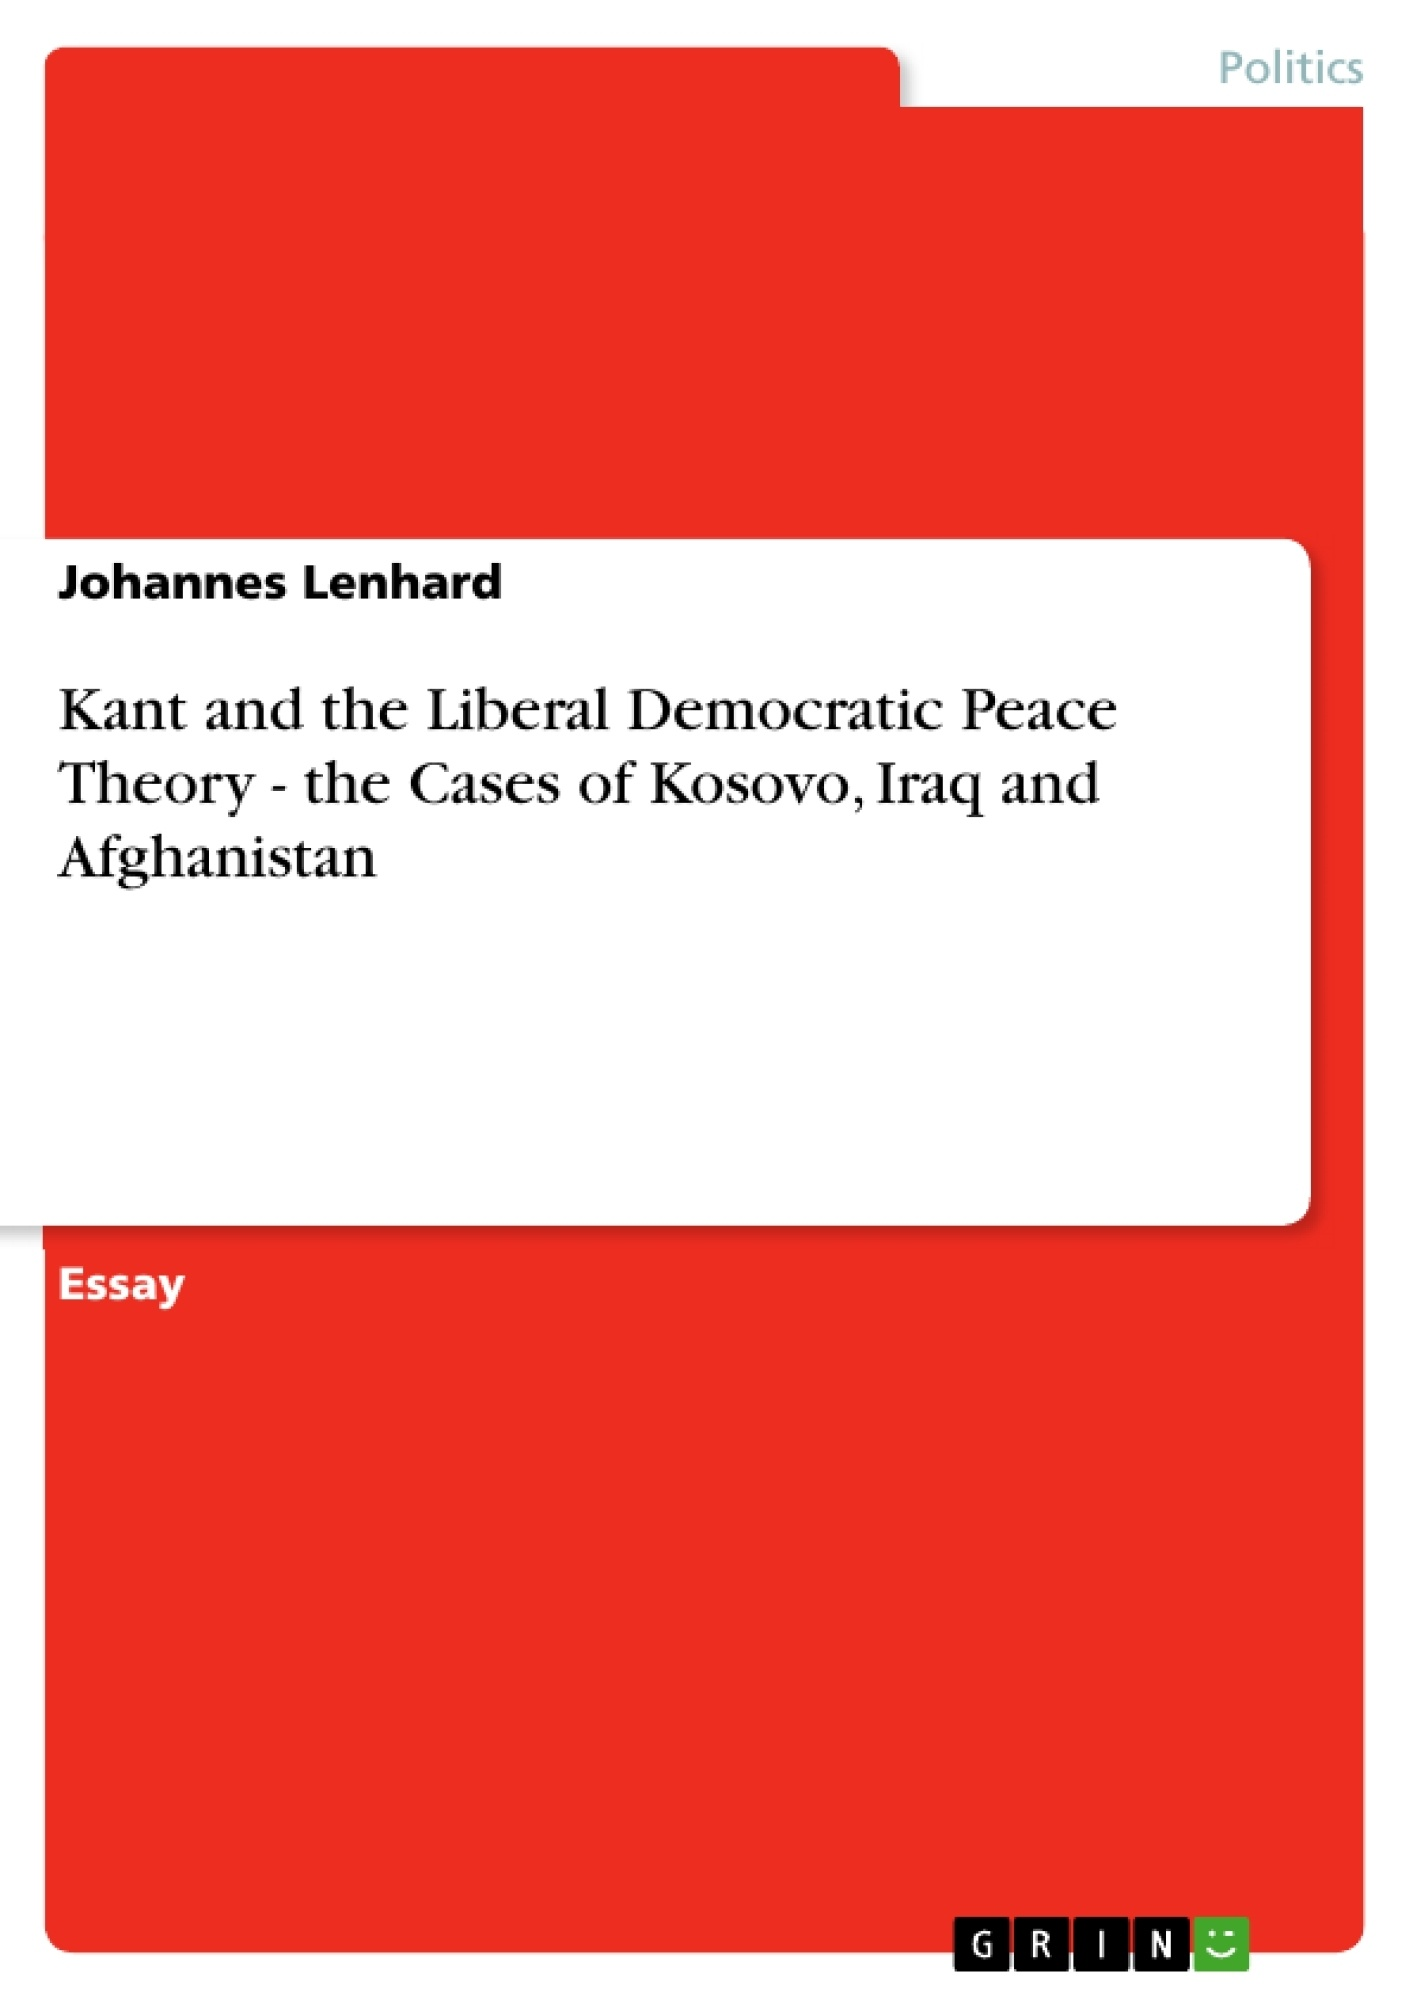 kant and the liberal democratic peace theory the cases of kant and the liberal democratic peace theory the cases of publish your master s thesis bachelor s thesis essay or term paper